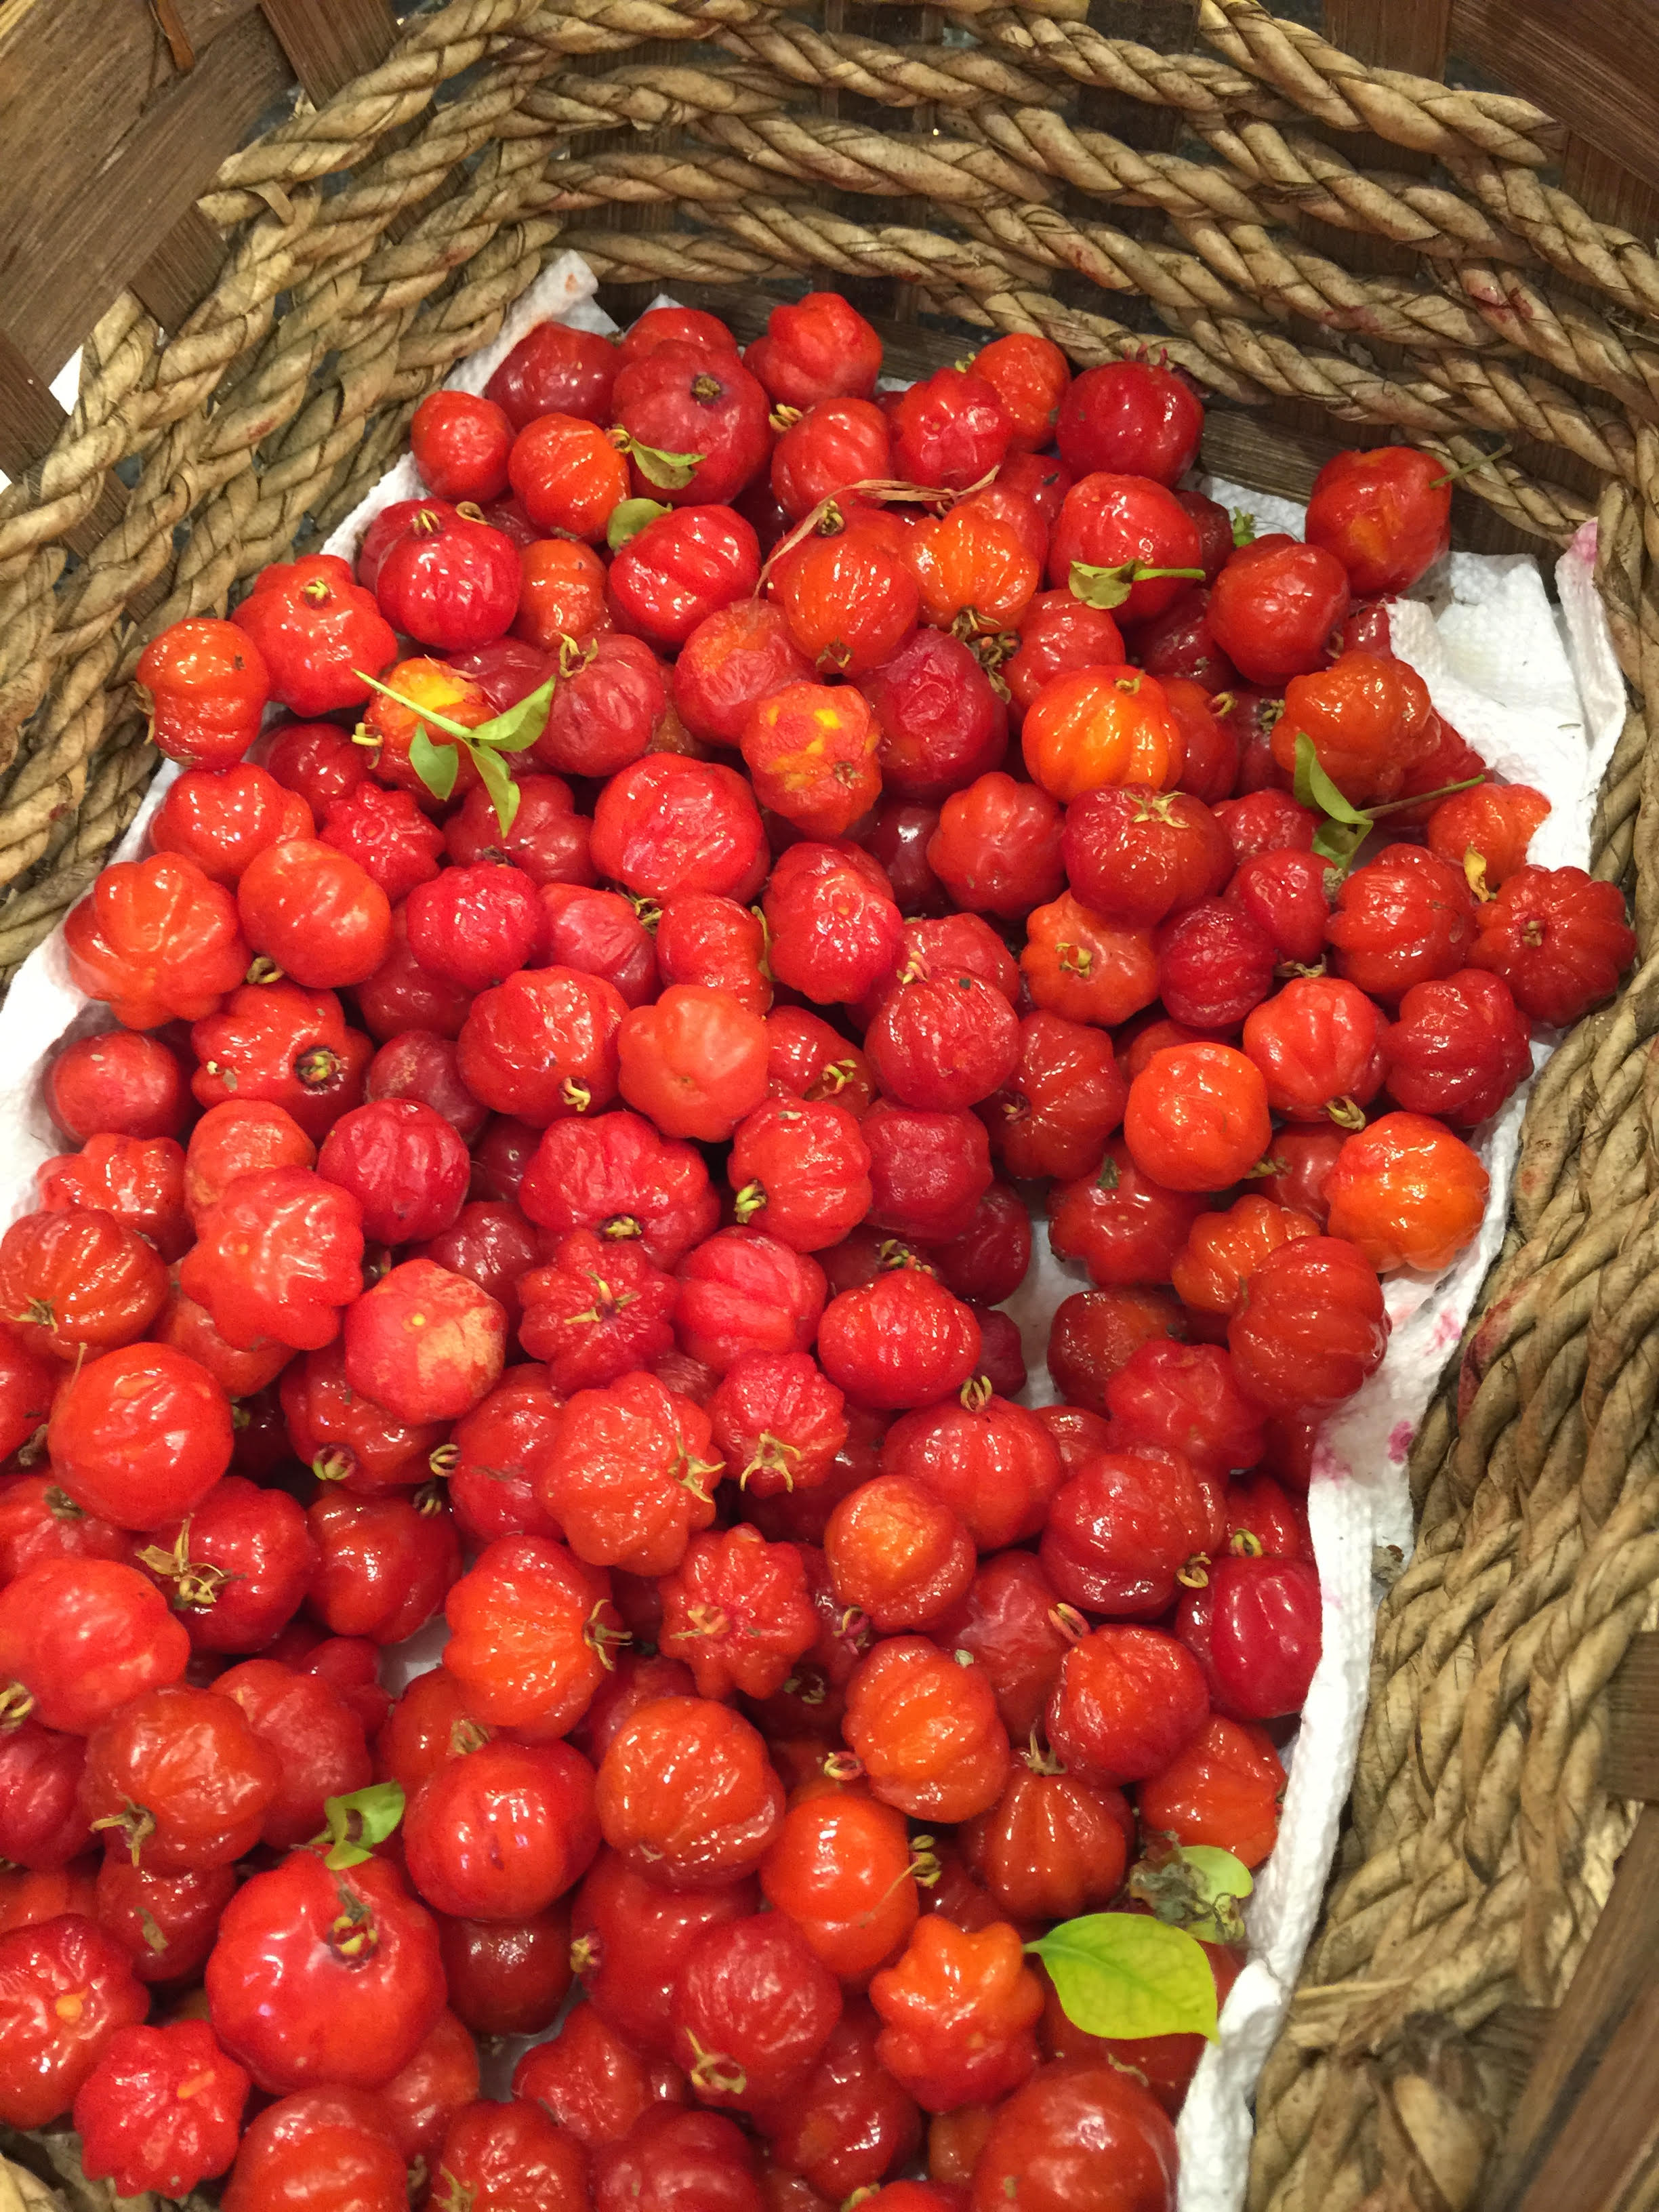 Surinam Cherries of little farm